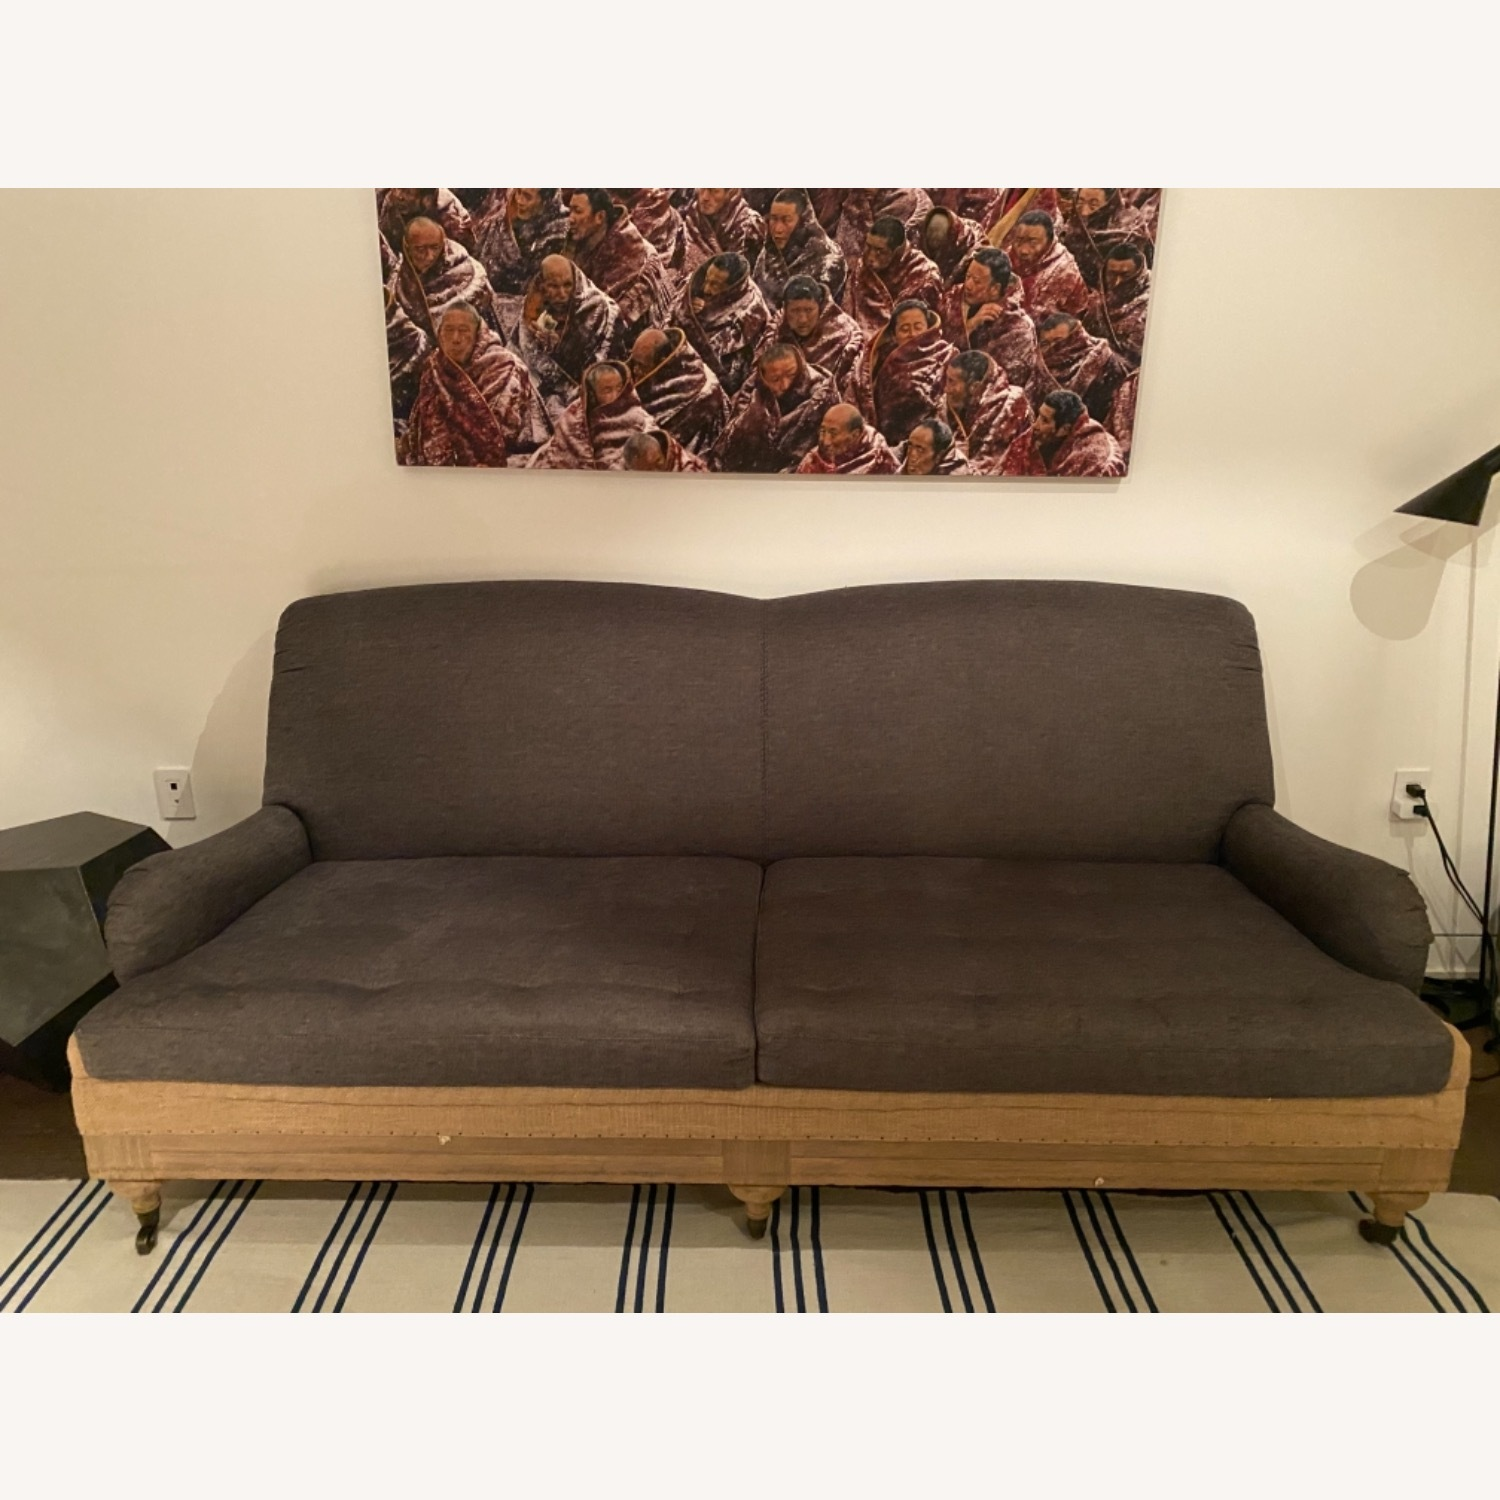 Restoration Hardware Deconstructed Sofa - image-1